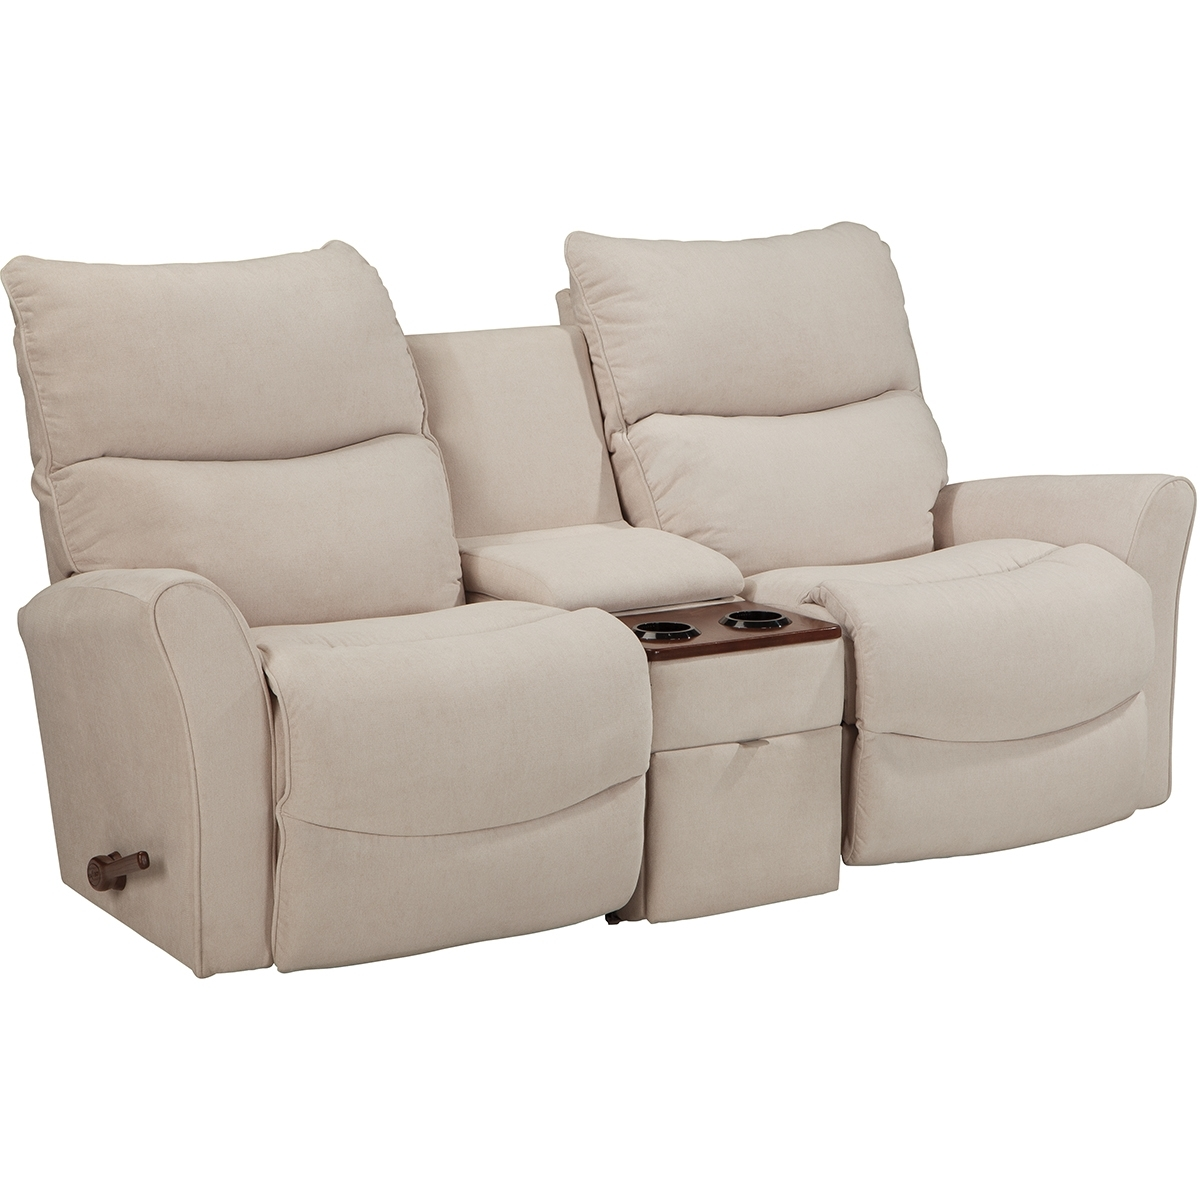 Sectional Sofas & Sectional Couches | La Z Boy With La Z Boy Sectional Sofas (View 5 of 10)